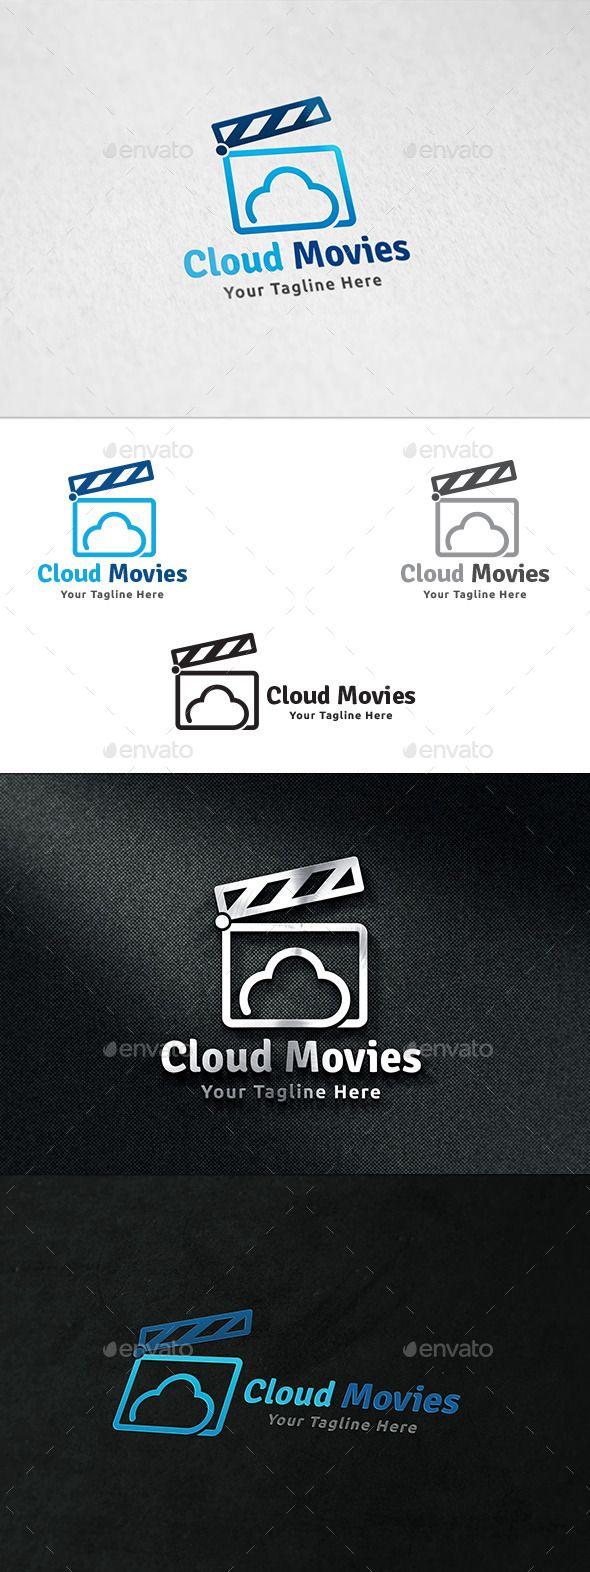 Cloud Movies  Logo Template — Vector EPS #film logo #reel • Available here → https://graphicriver.net/item/cloud-movies-logo-template/11310095?ref=pxcr